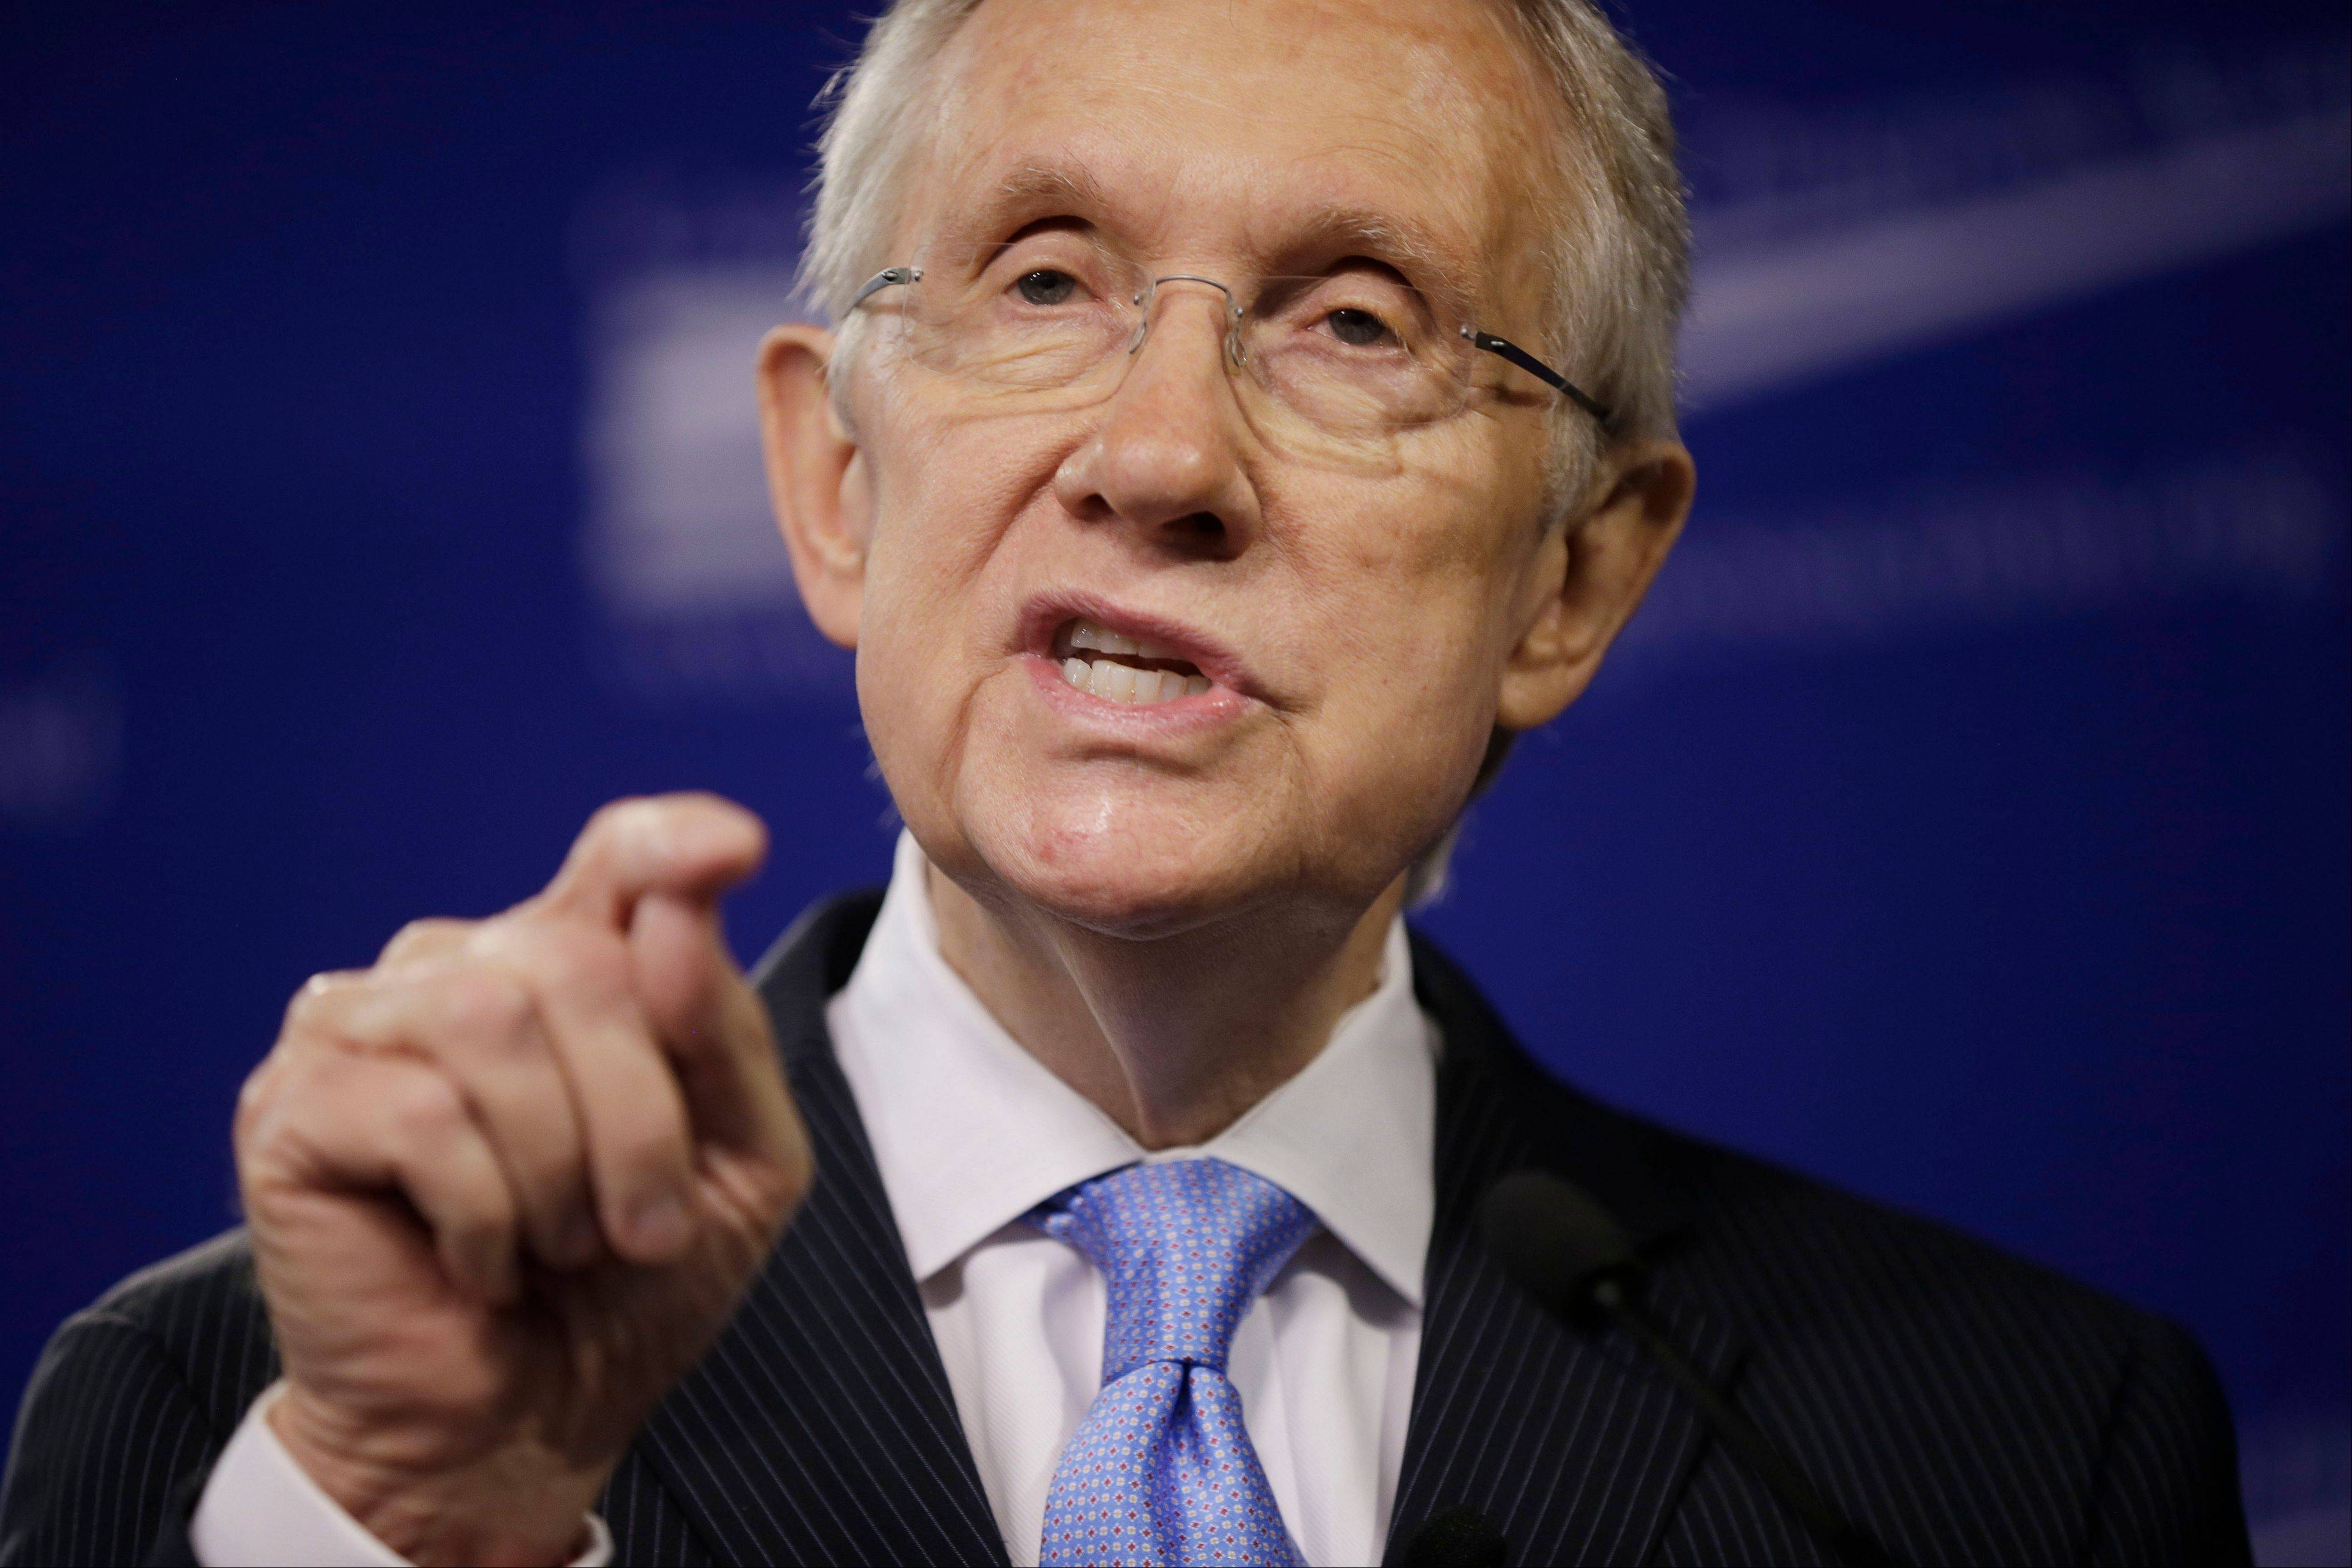 Senate Majority Leader Harry Reid, D-Nev., speaks at the center for American Progress Action Fund in Washington, Monday, July 15, 2013. Reid spoke about ending the current gridlock in the Senate that according to him is harming the nation�s ability to address key challenges.